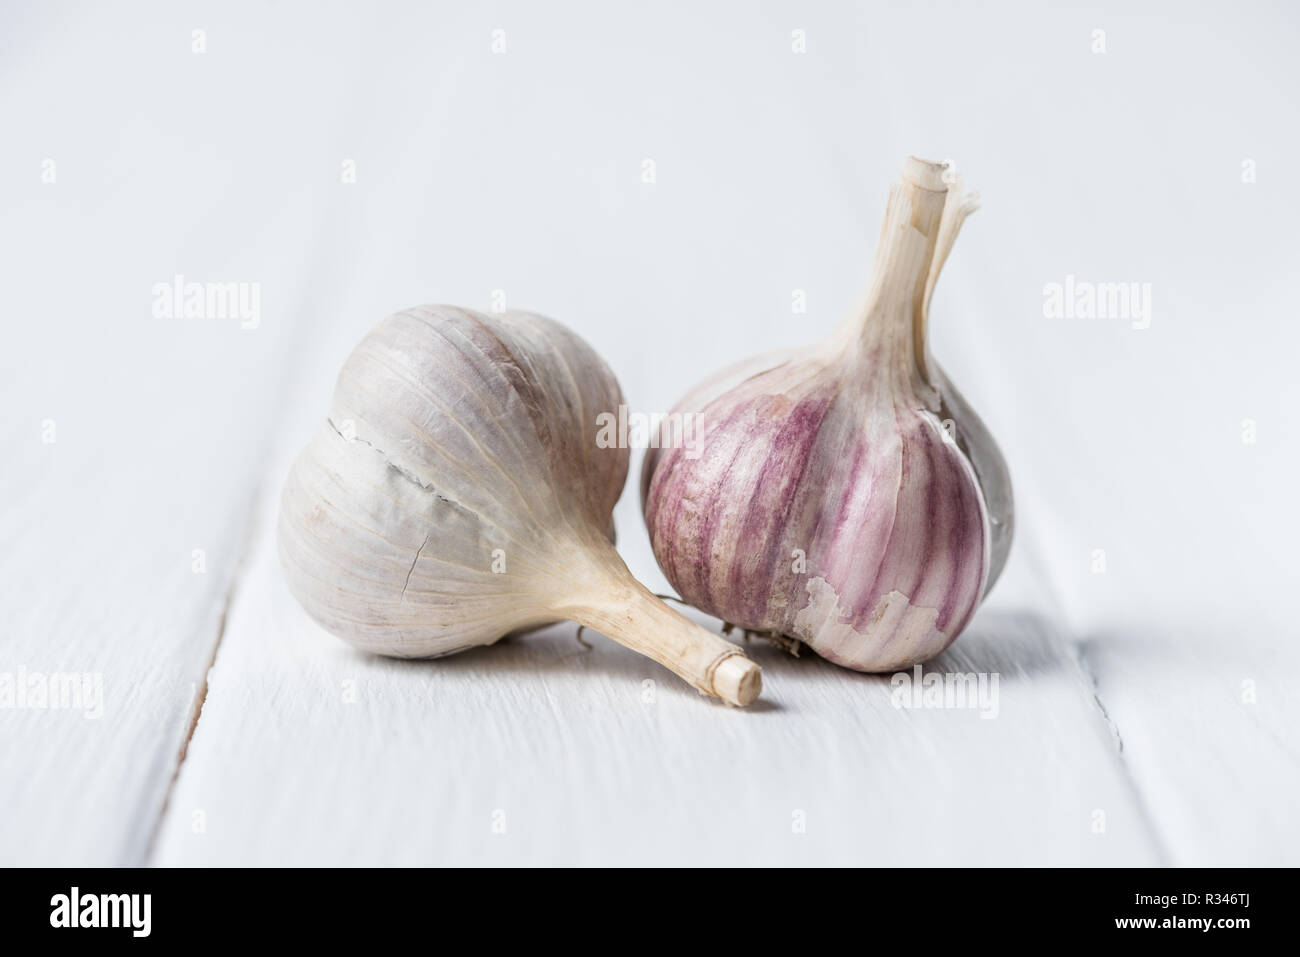 Two garlic heads on white wooden table - Stock Image